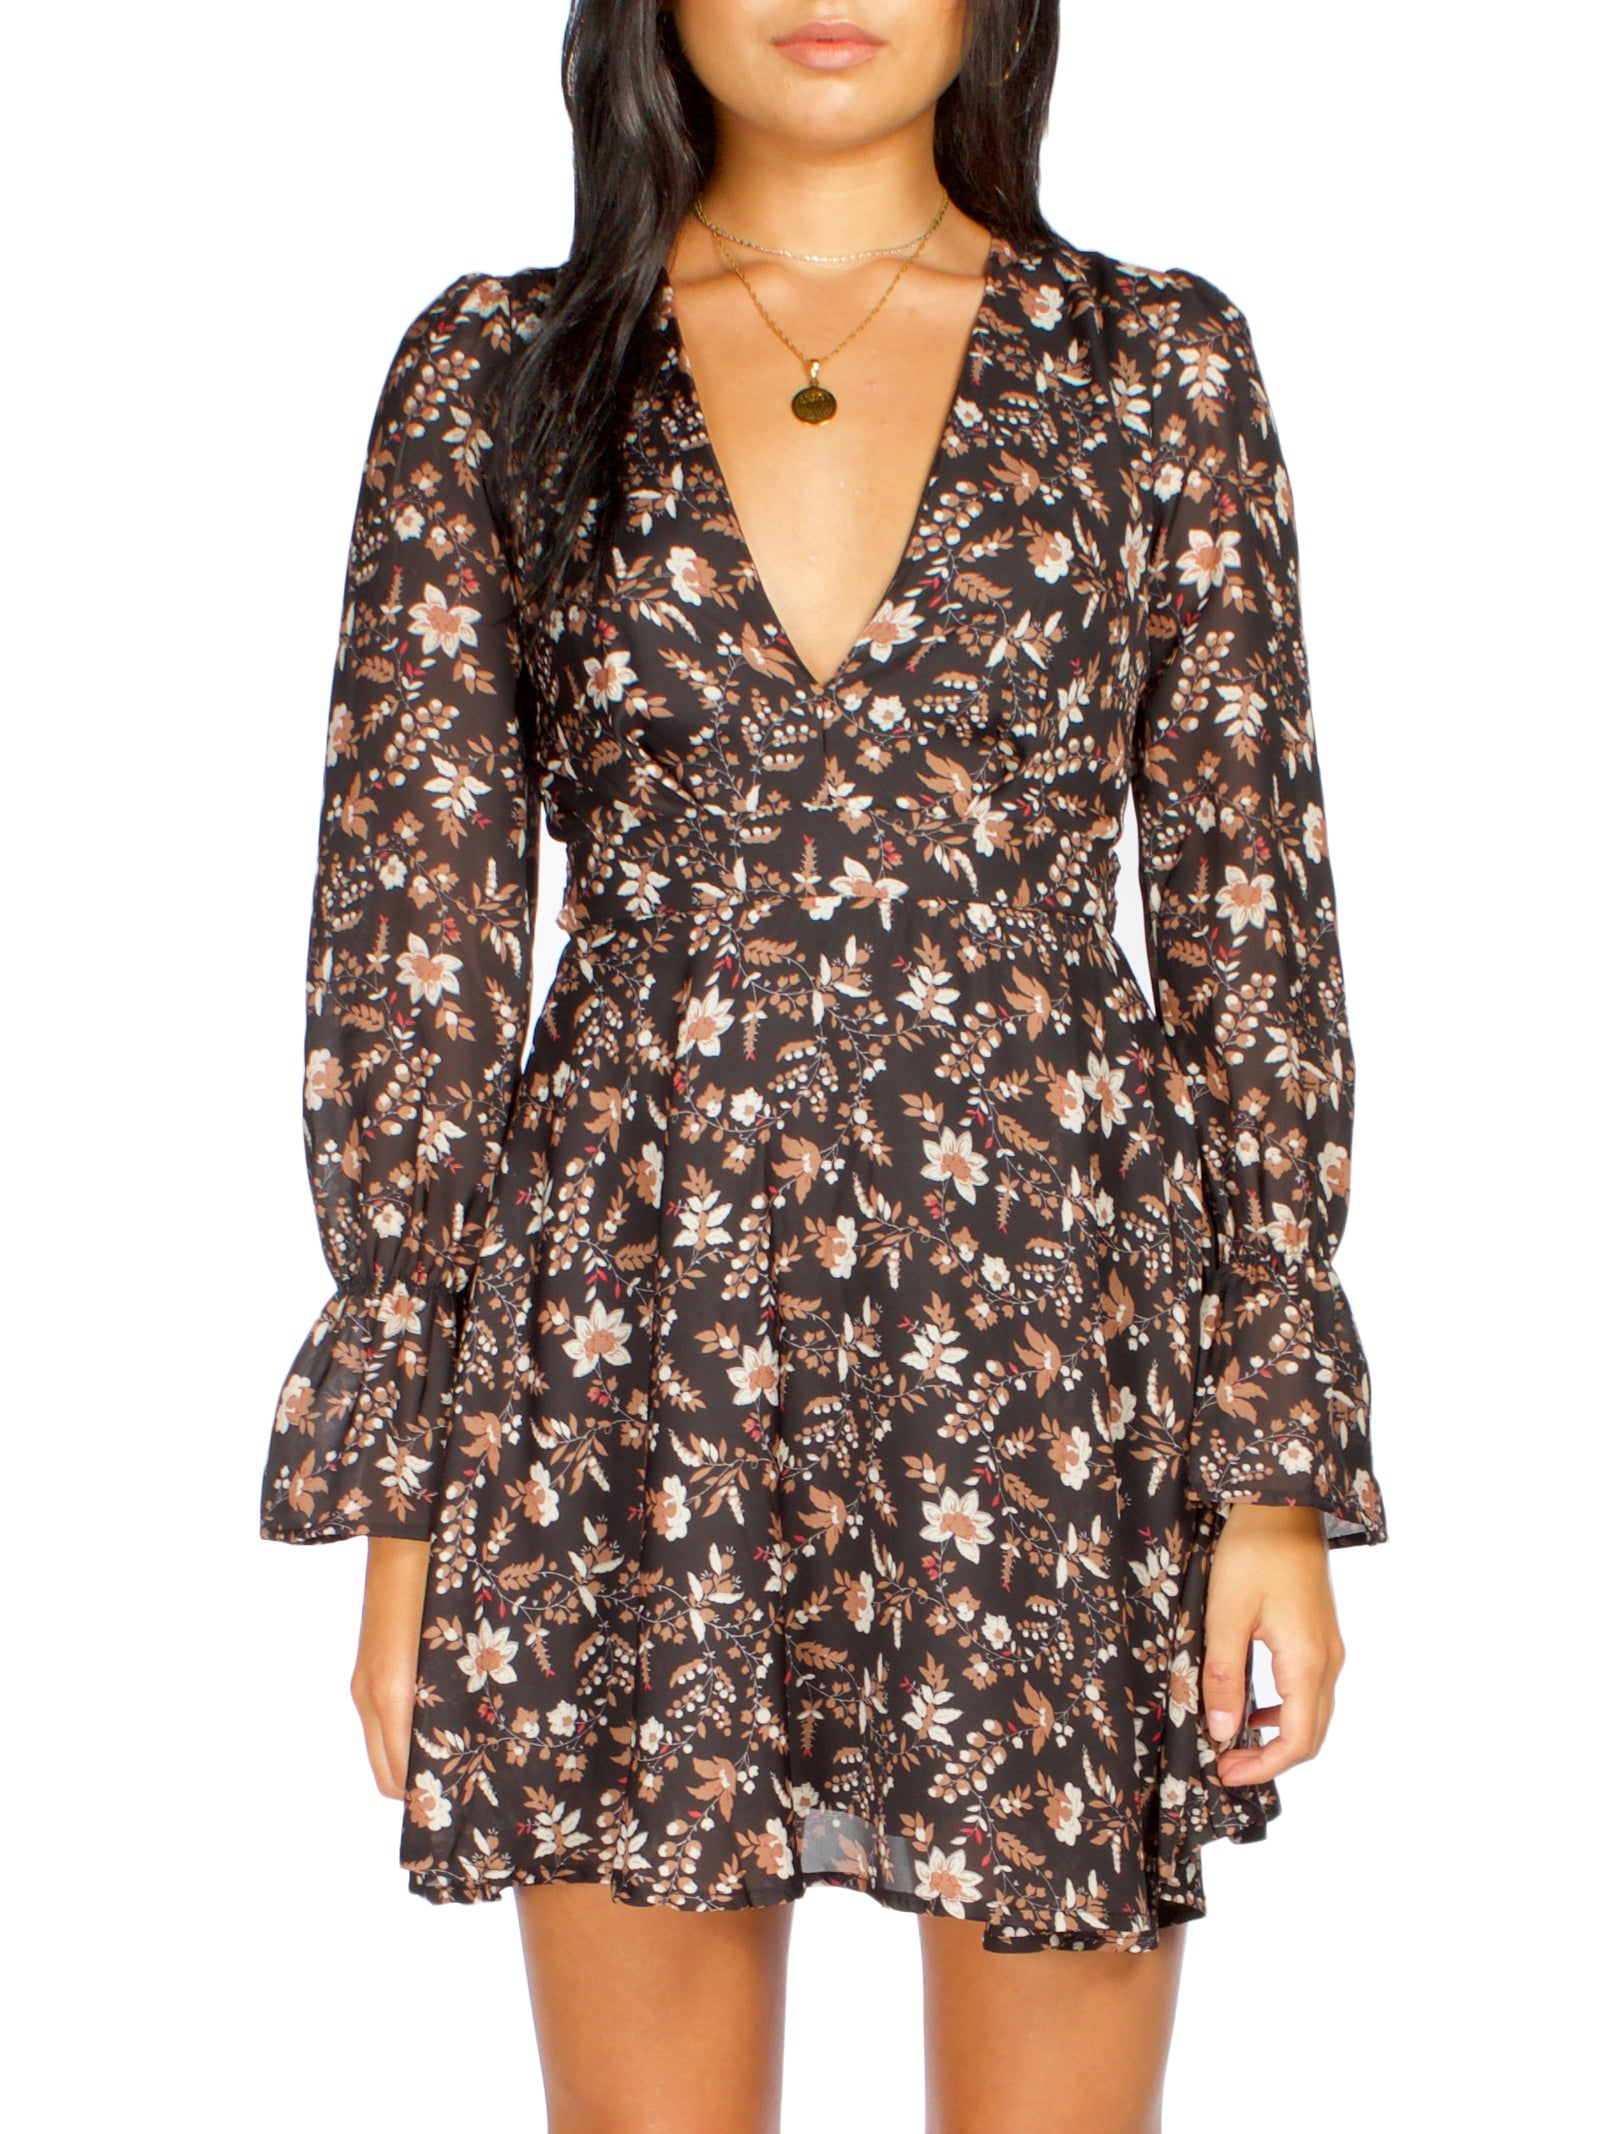 LINA Floral Plunge Dress - PRADEGAL